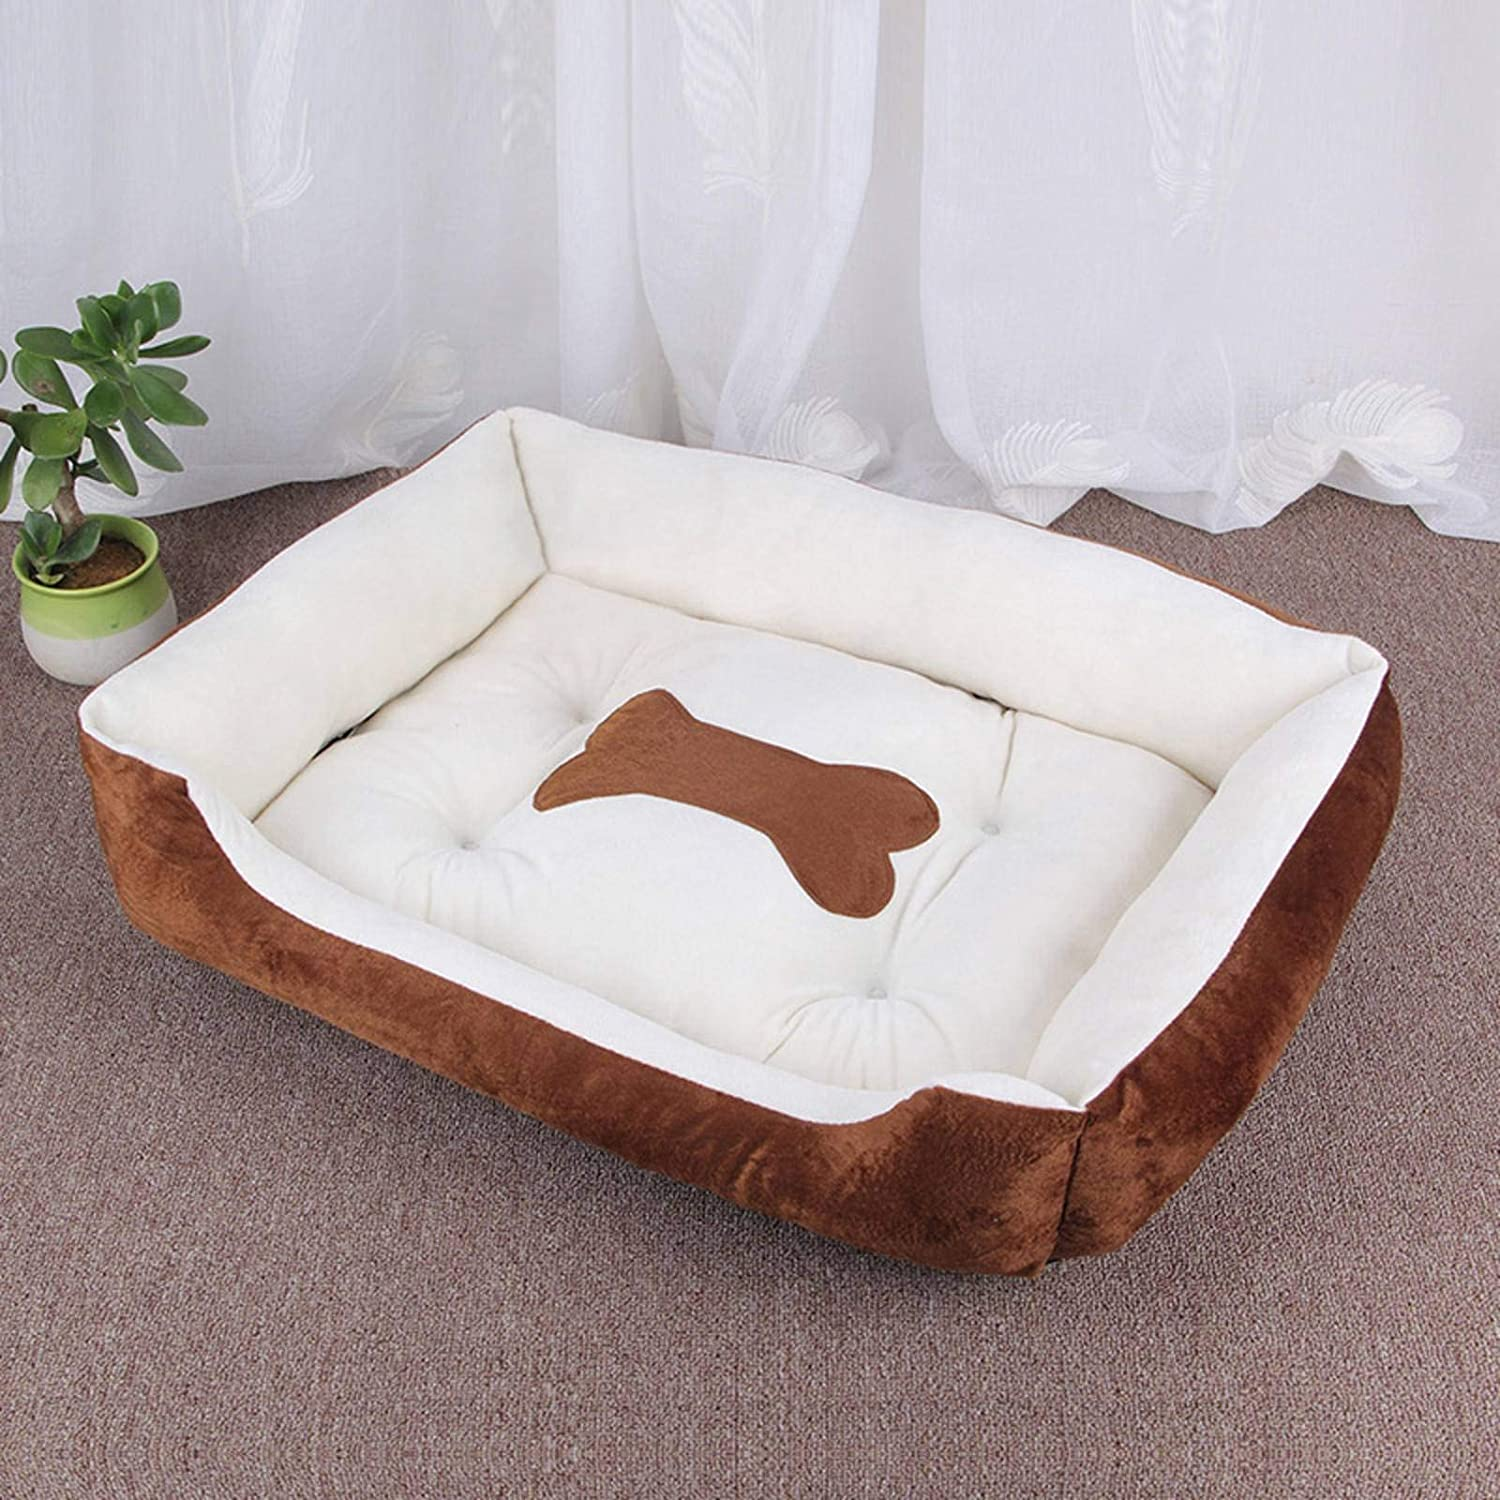 N-B Pet Bed Warm Pet Supplies For Small, Medium and Large Dogs Soft Pet Bed For Dogs Washable House For Cats and Dogs Cotton Kennel Mat